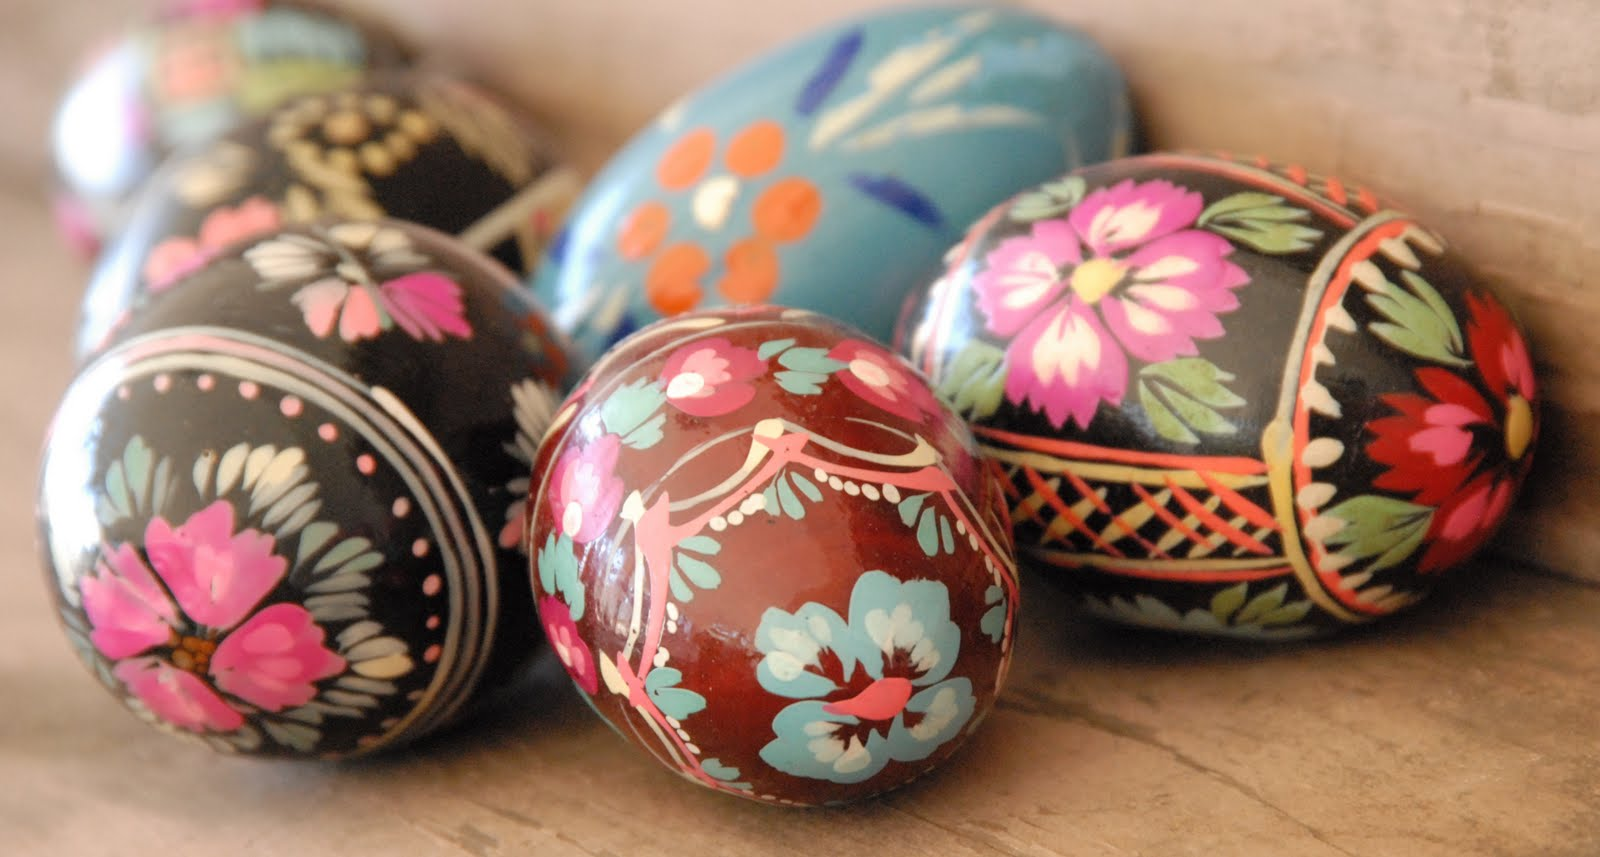 silk tie easter eggs photo - 1